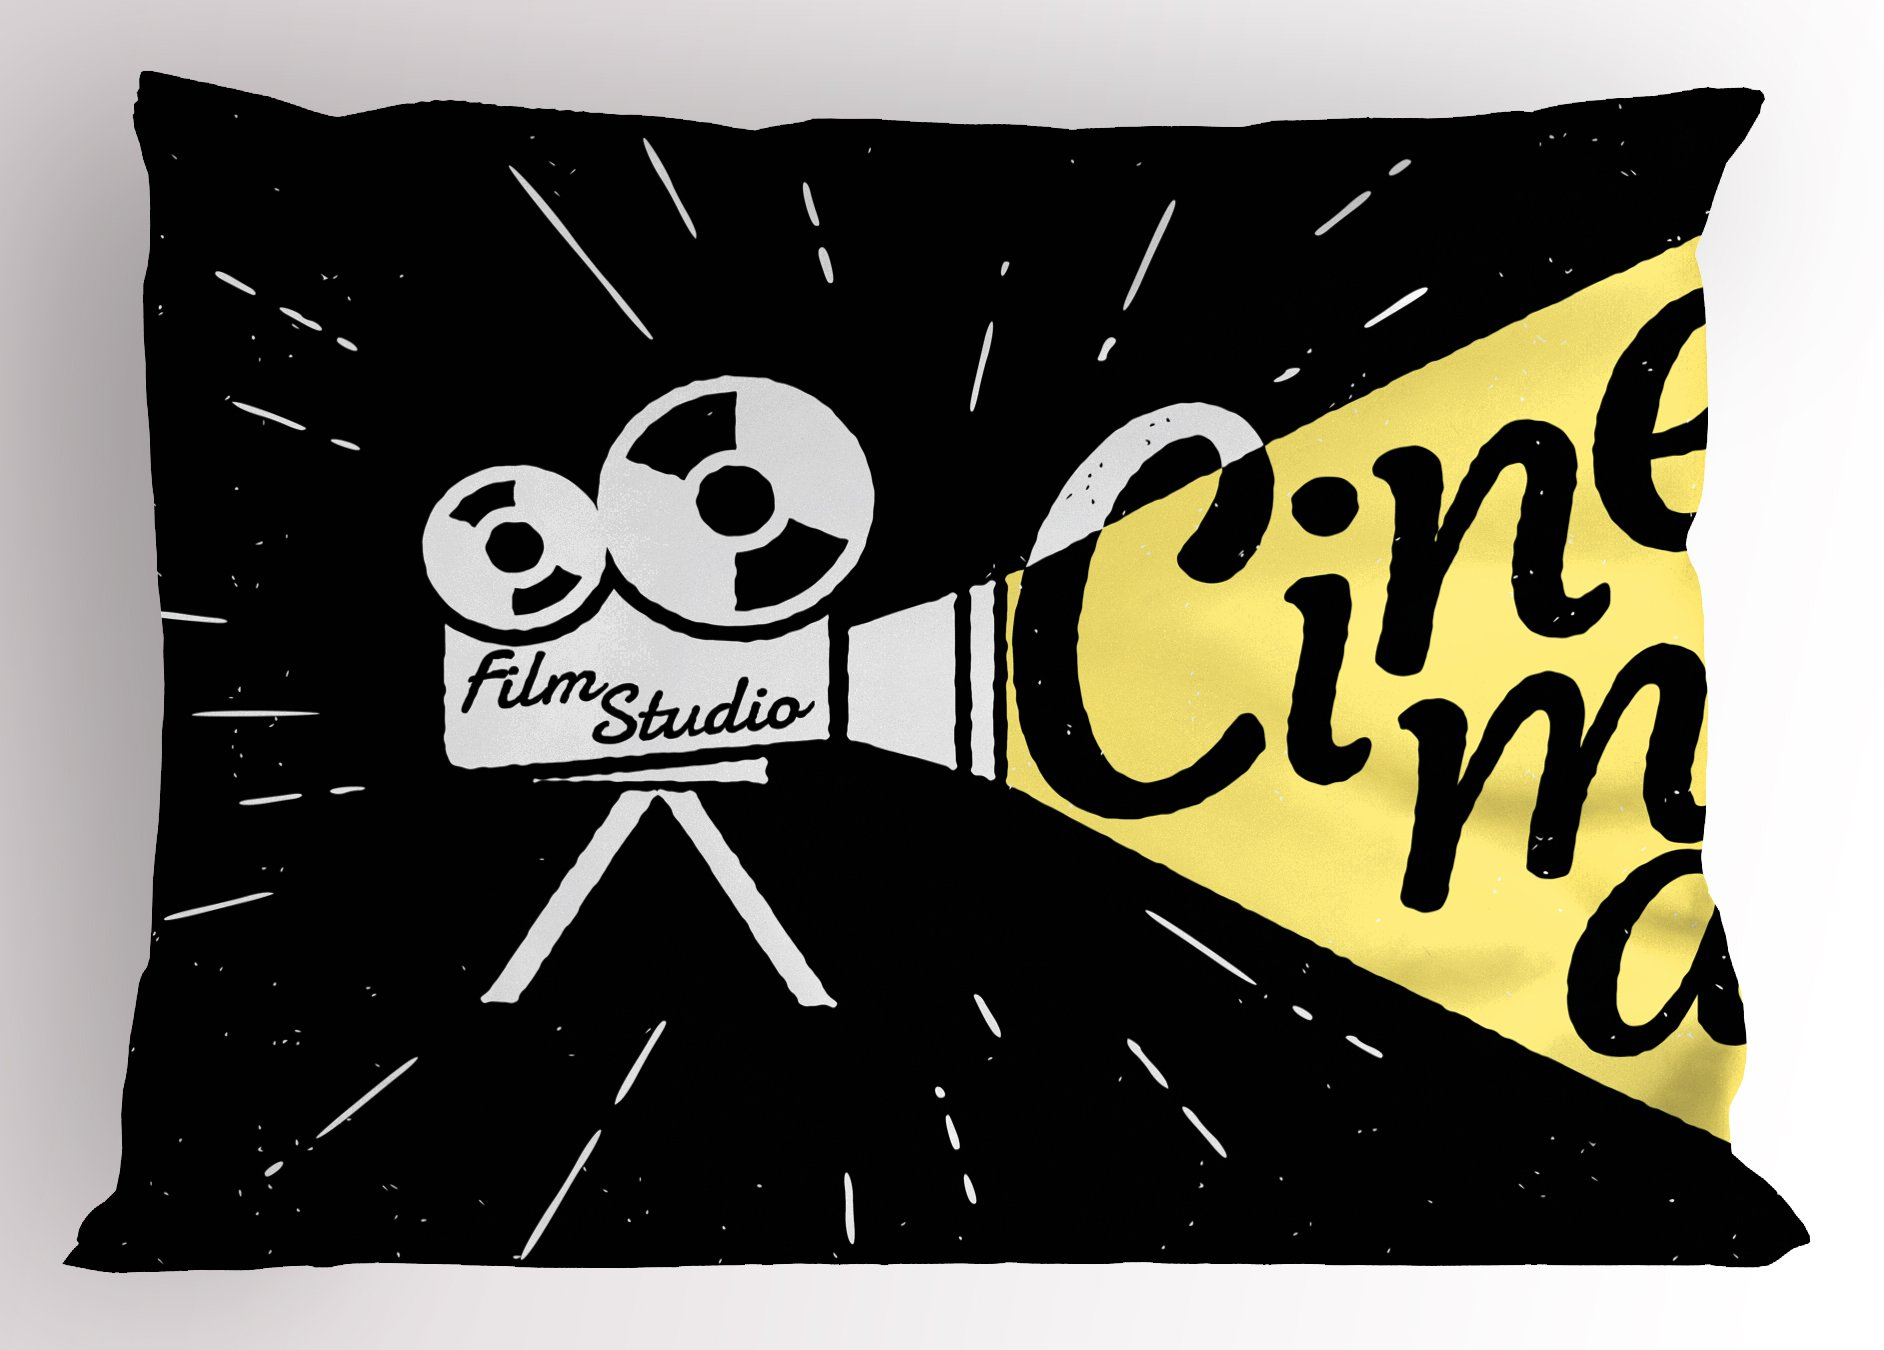 Ambesonne Movie Theater Pillow Sham, Movie Projector Sketch with Grunge Cinema Lettering on Black Backdrop, Decorative Standard King Size Printed Pillowcase, 36 X 20 inches, Yellow Black White